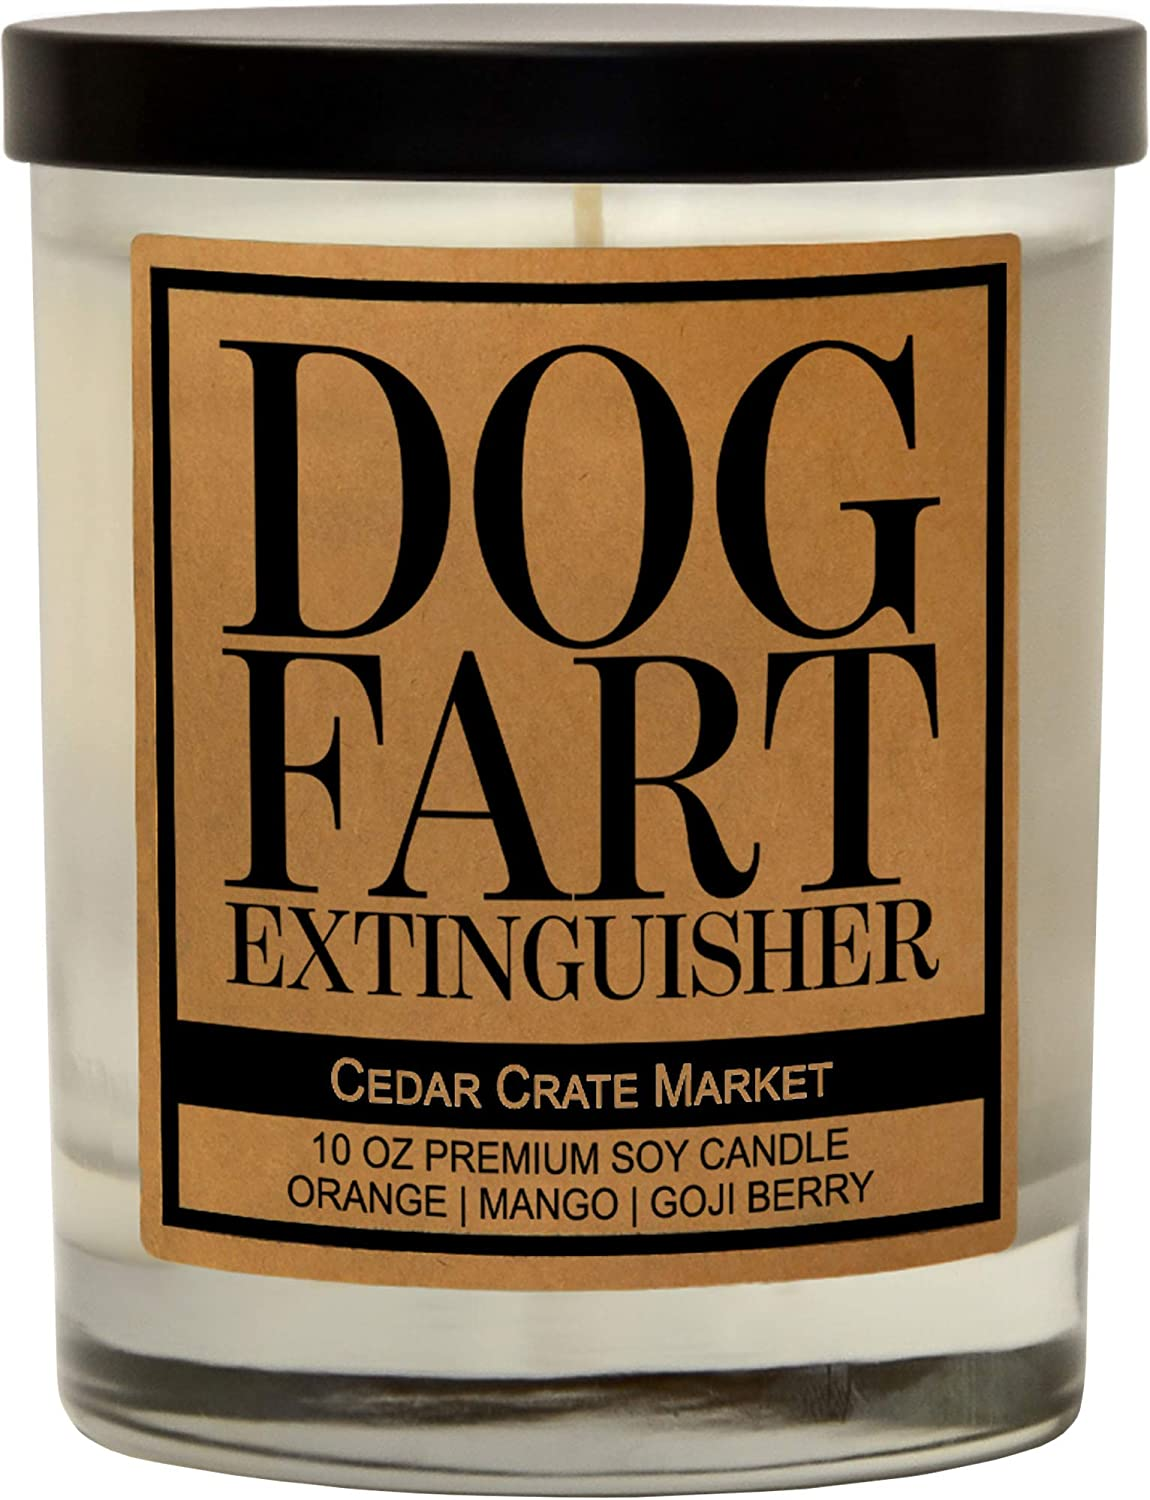 Funny Dog Candles for Dog Lovers, Dog Gifts for Dog Lovers Dog Mom Gifts for Women, Pet Mom, Fur Mamas, Dog Dads, Foster, Rescue, Adoption. Scented, Soy Jar Candle, 10 oz. (Dog Fart Extinguisher)